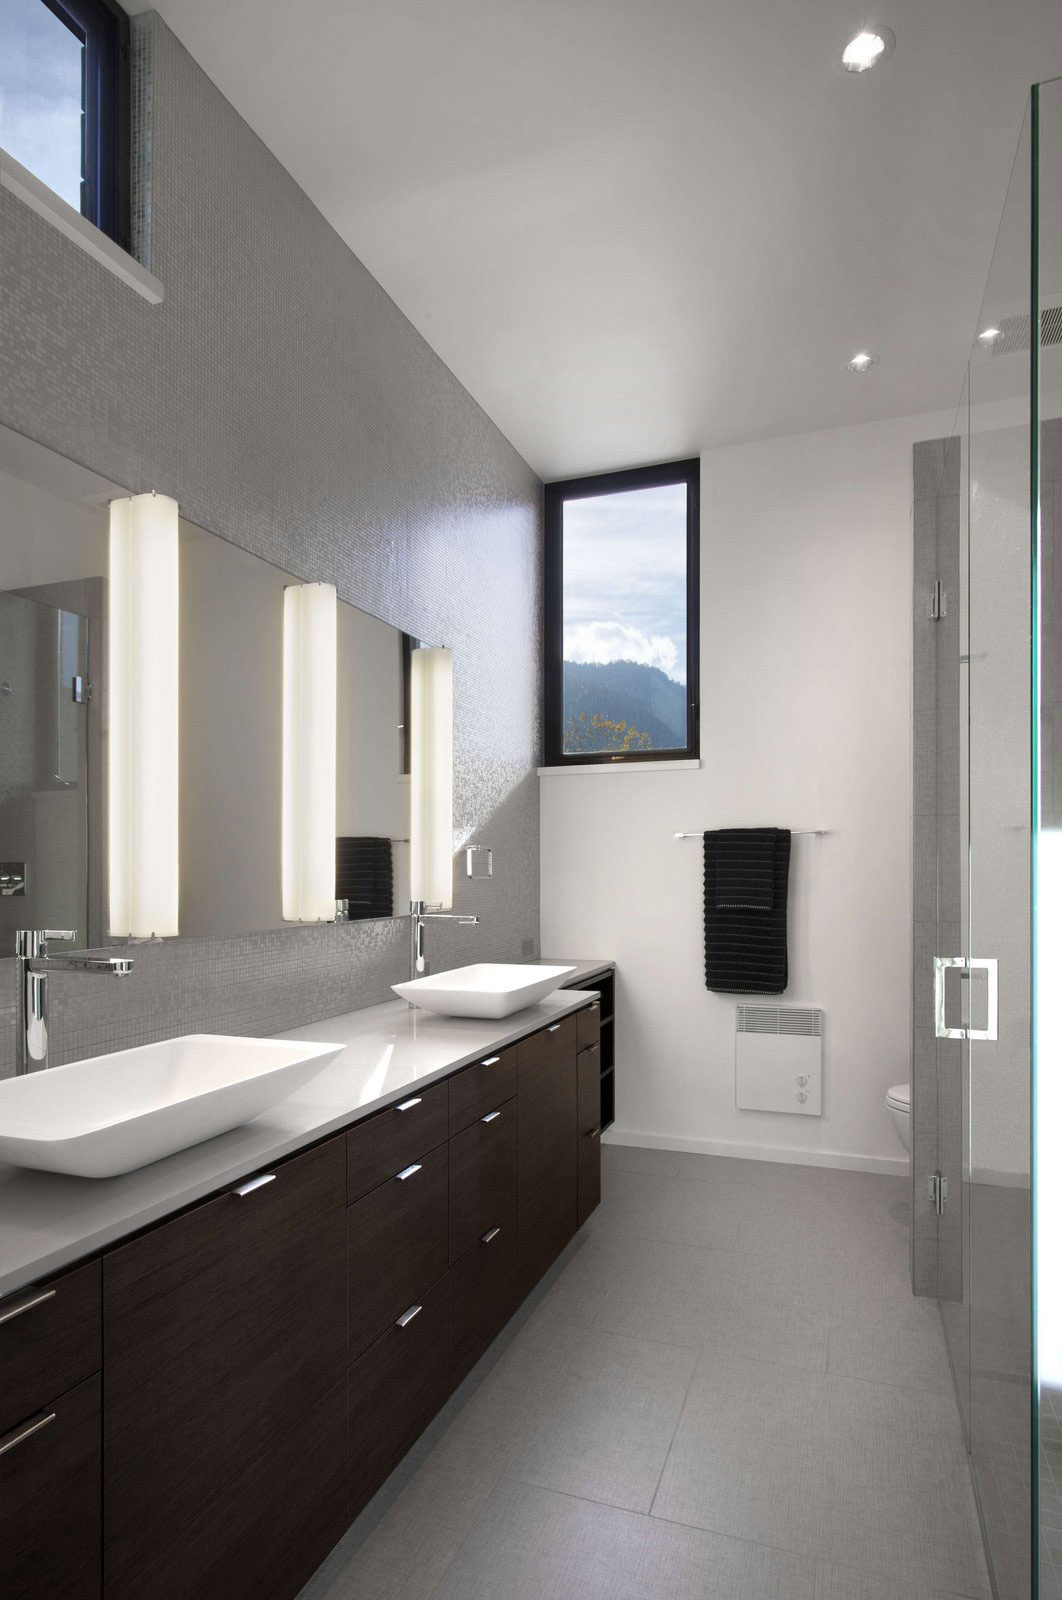 Bathroom, Double Sinks, Stylish Townhomes near Boulder, Colorado